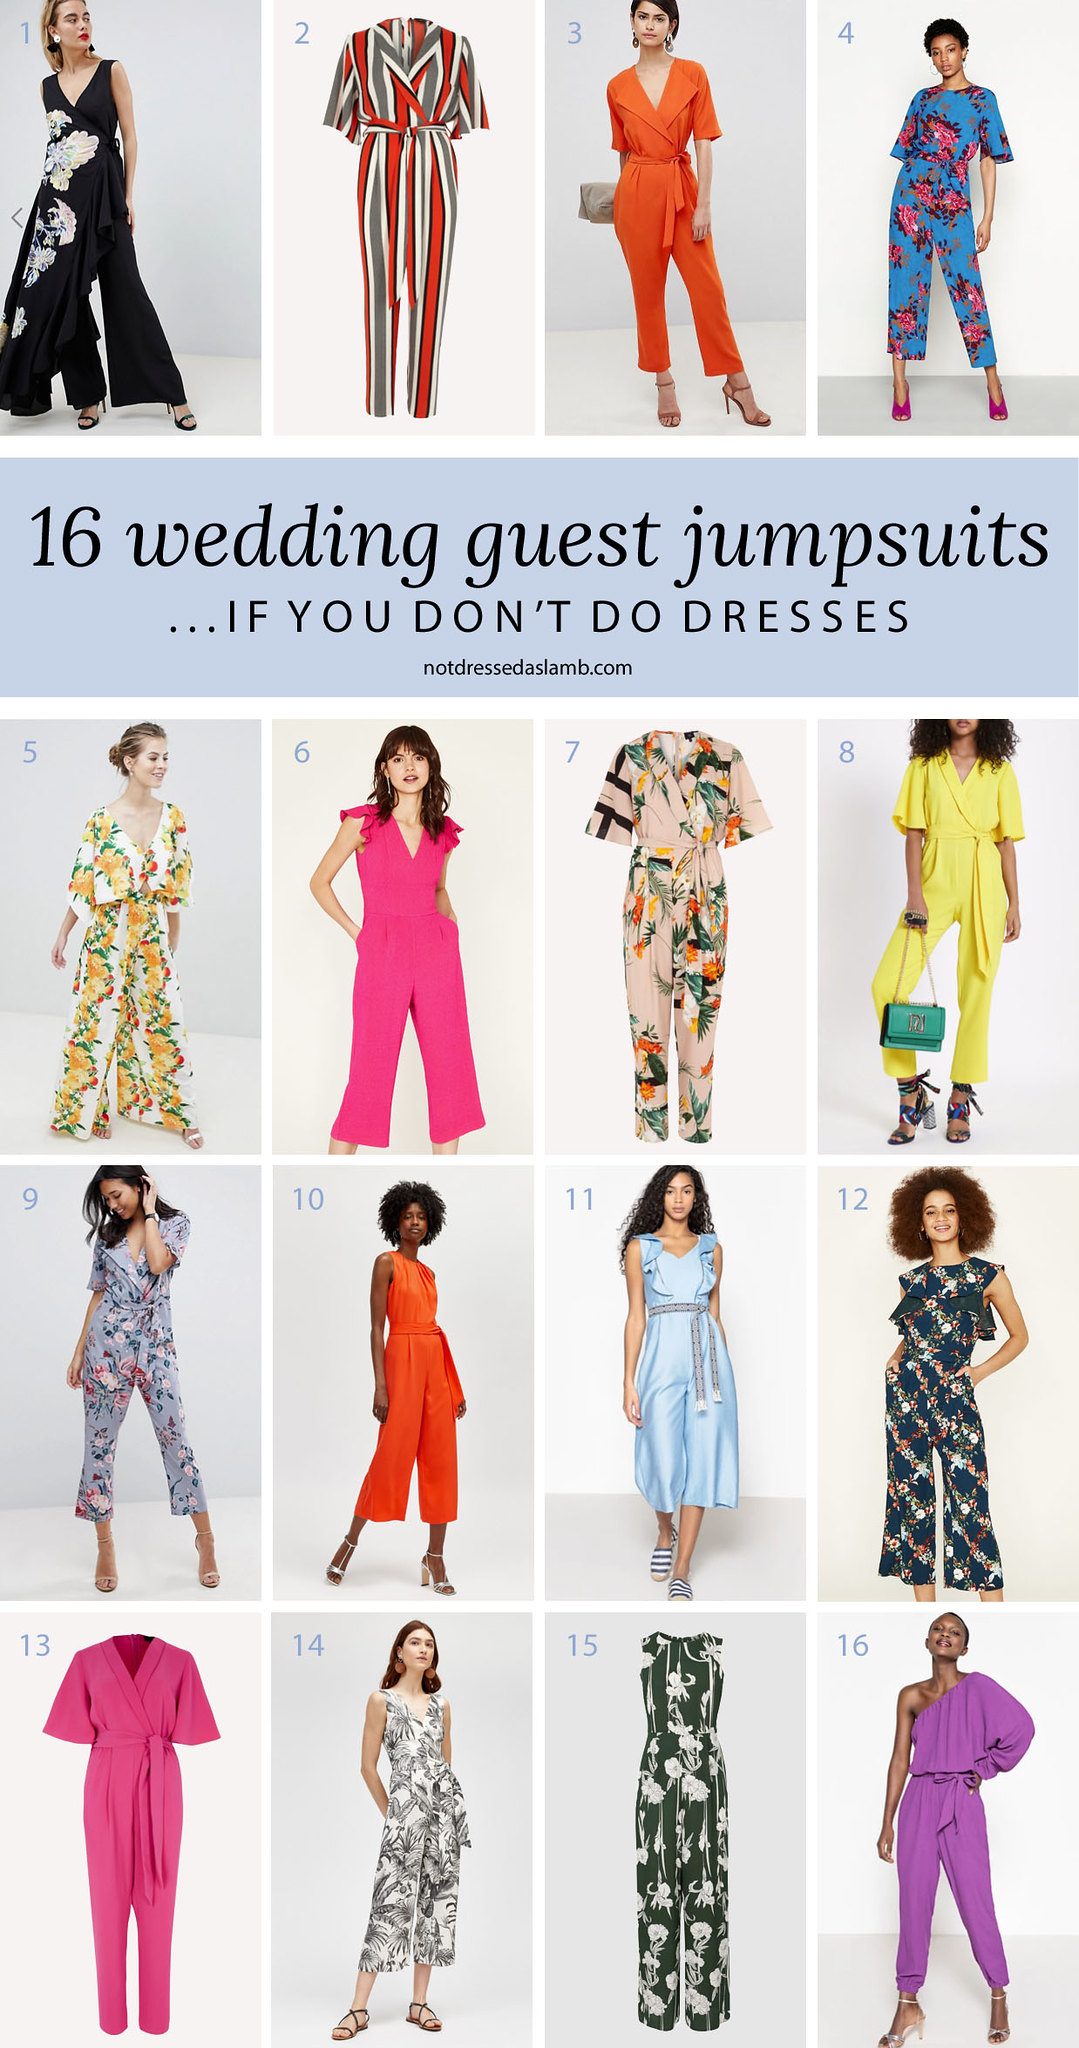 What to Wear to a Summer Wedding for All Shapes & Sizes: 16 Wedding Guest Jumpsuits if You Don't Do Dresses - Not Dressed As Lamb